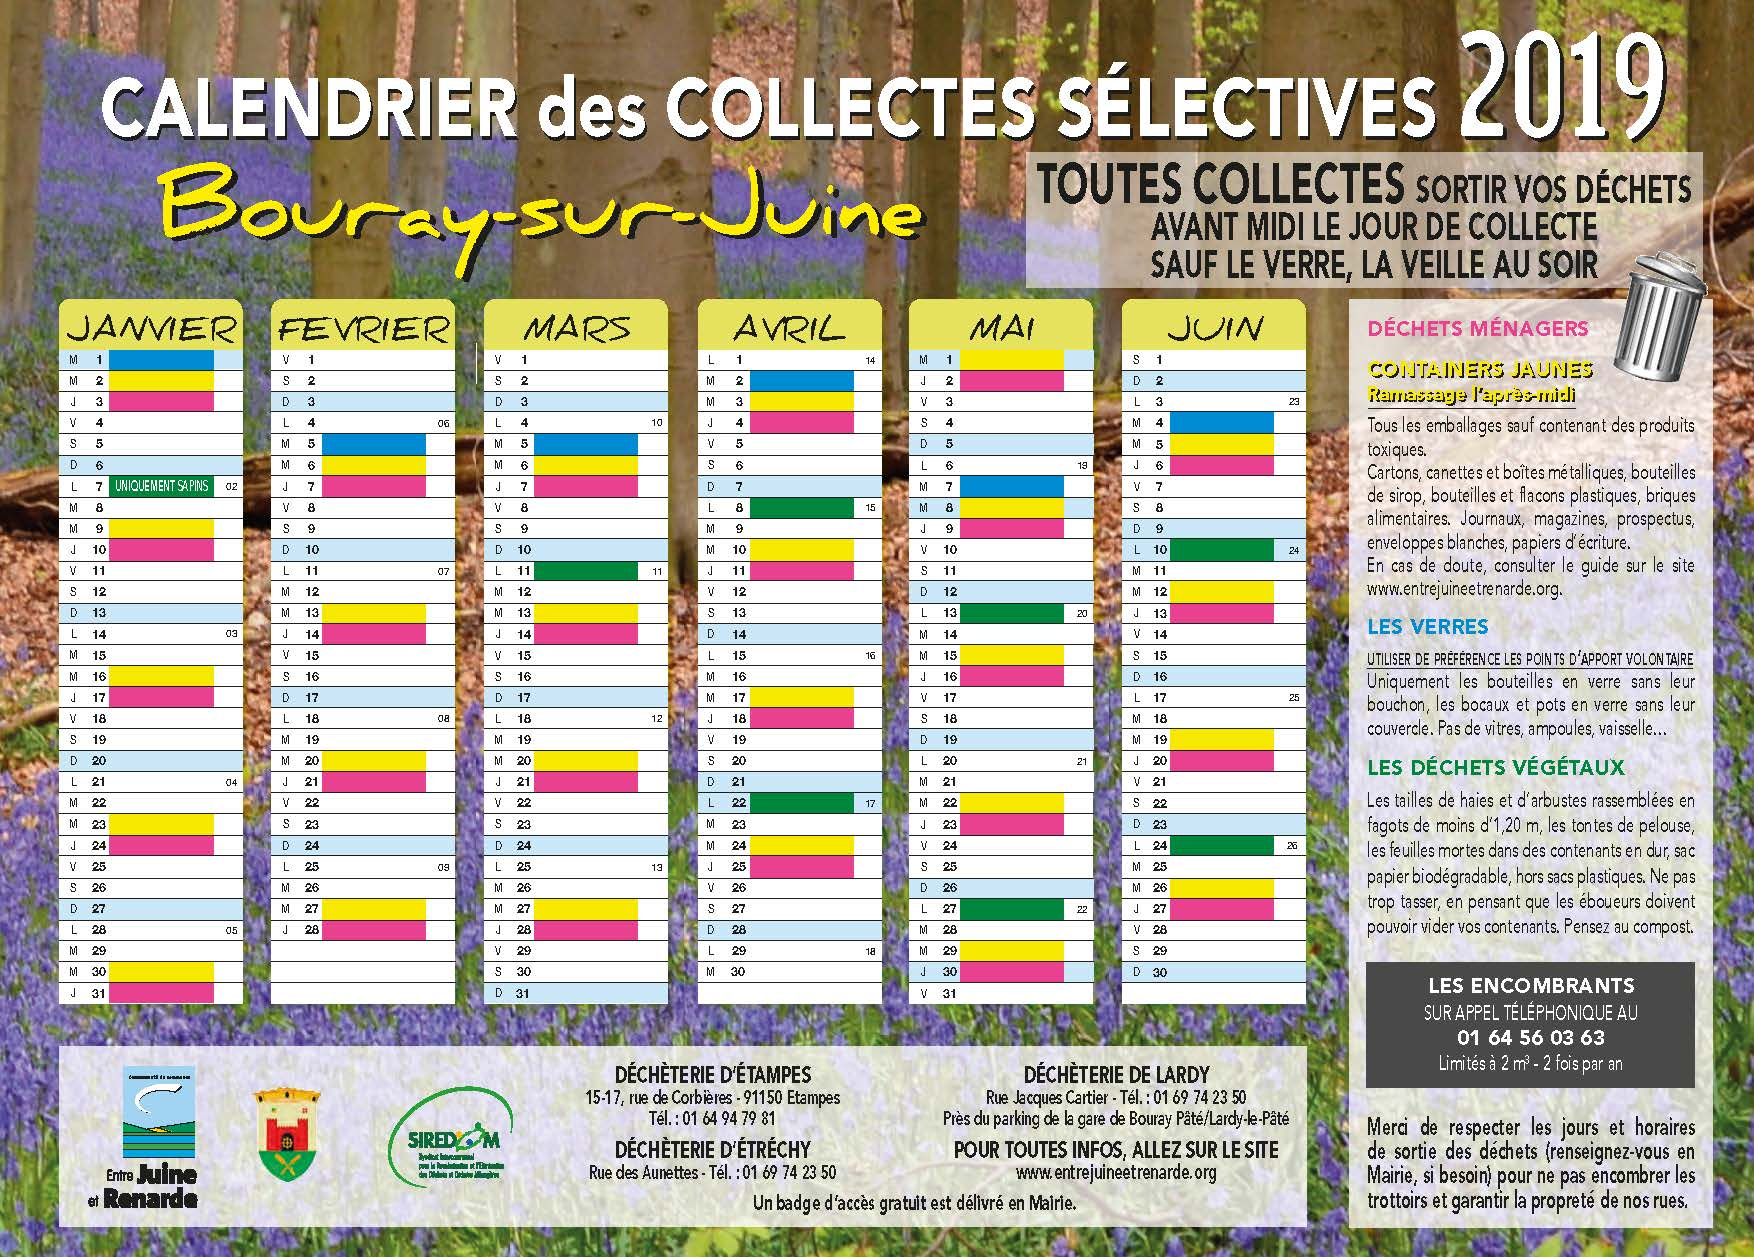 CCJR - Calendrier Bouray-sur-Juine 2019 A4 Recto Verso Page 1